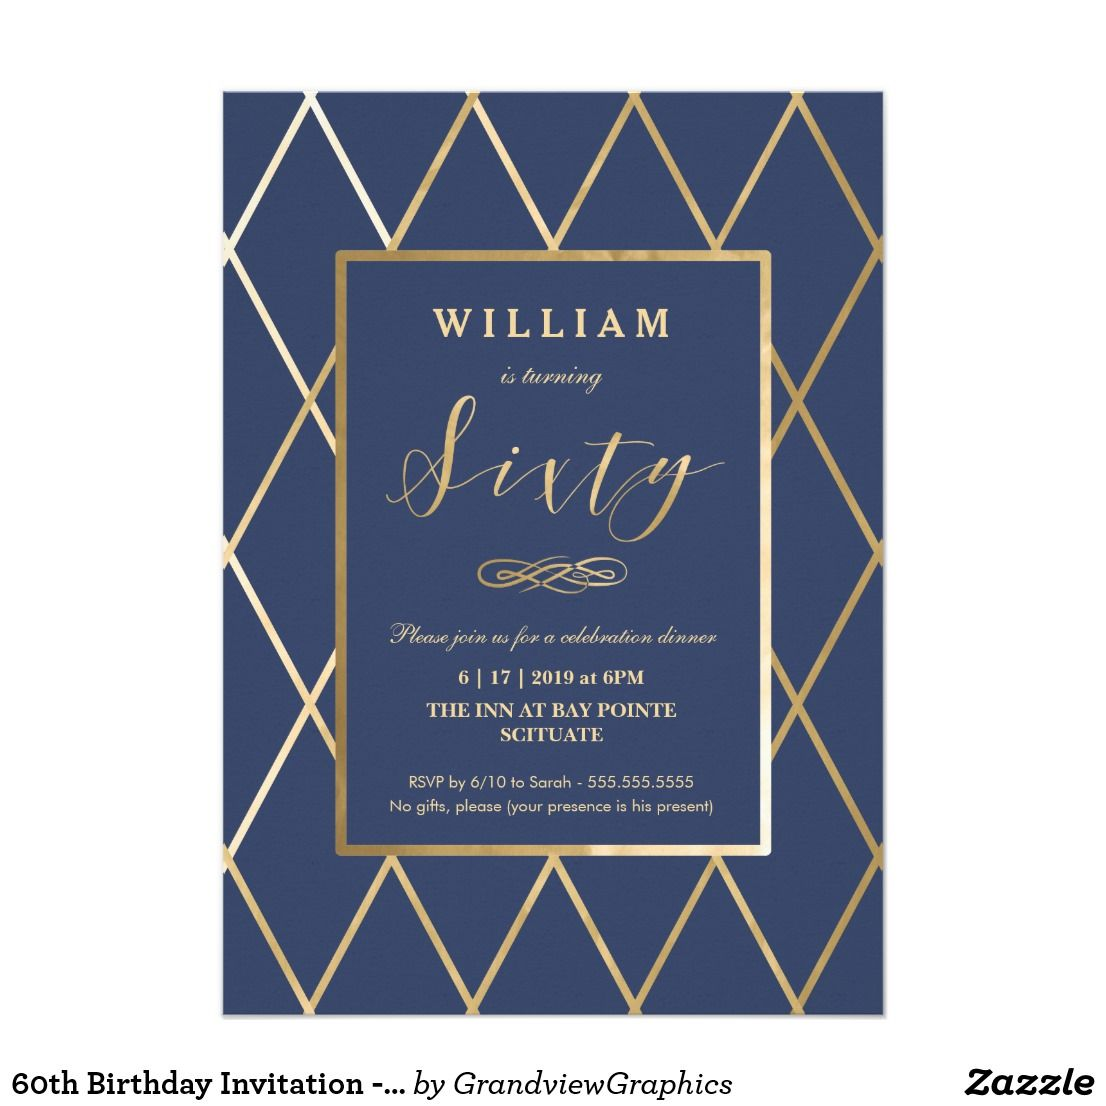 60th birthday invitation gold elegant trendy pinterest 60th 60th birthday invitation gold elegant trendy stopboris Gallery